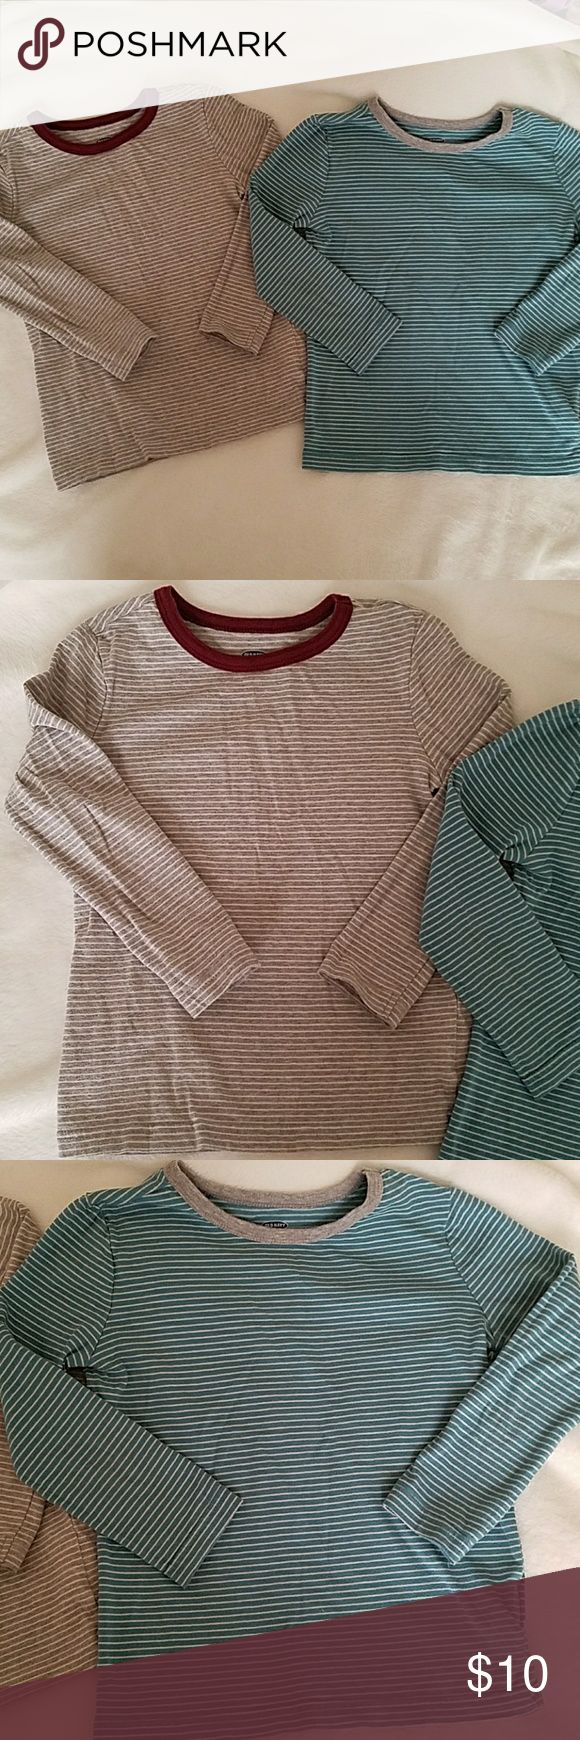 Old navy striped T shirts (long sleeve) One top is gray and white striped with a burgundy collar. The other is a turquoise and white striped shirt with a gray collar. Great condition. Old Navy Shirts & Tops Tees - Long Sleeve